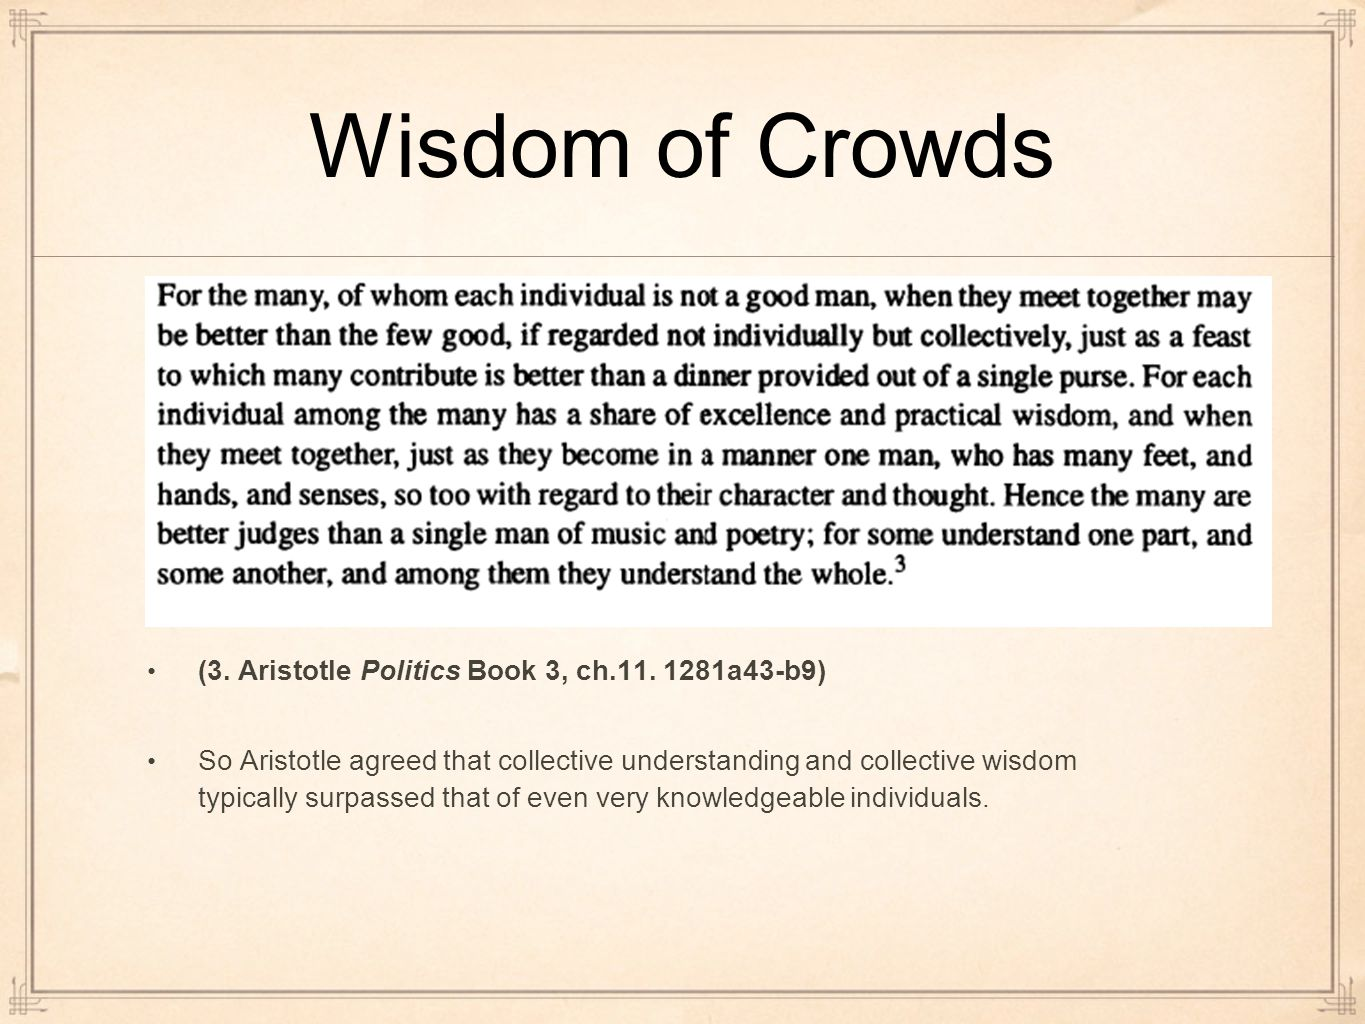 aristotle politics book 3 A discussion of some of the central ideas of aristotle's politics from books 3 and 4.